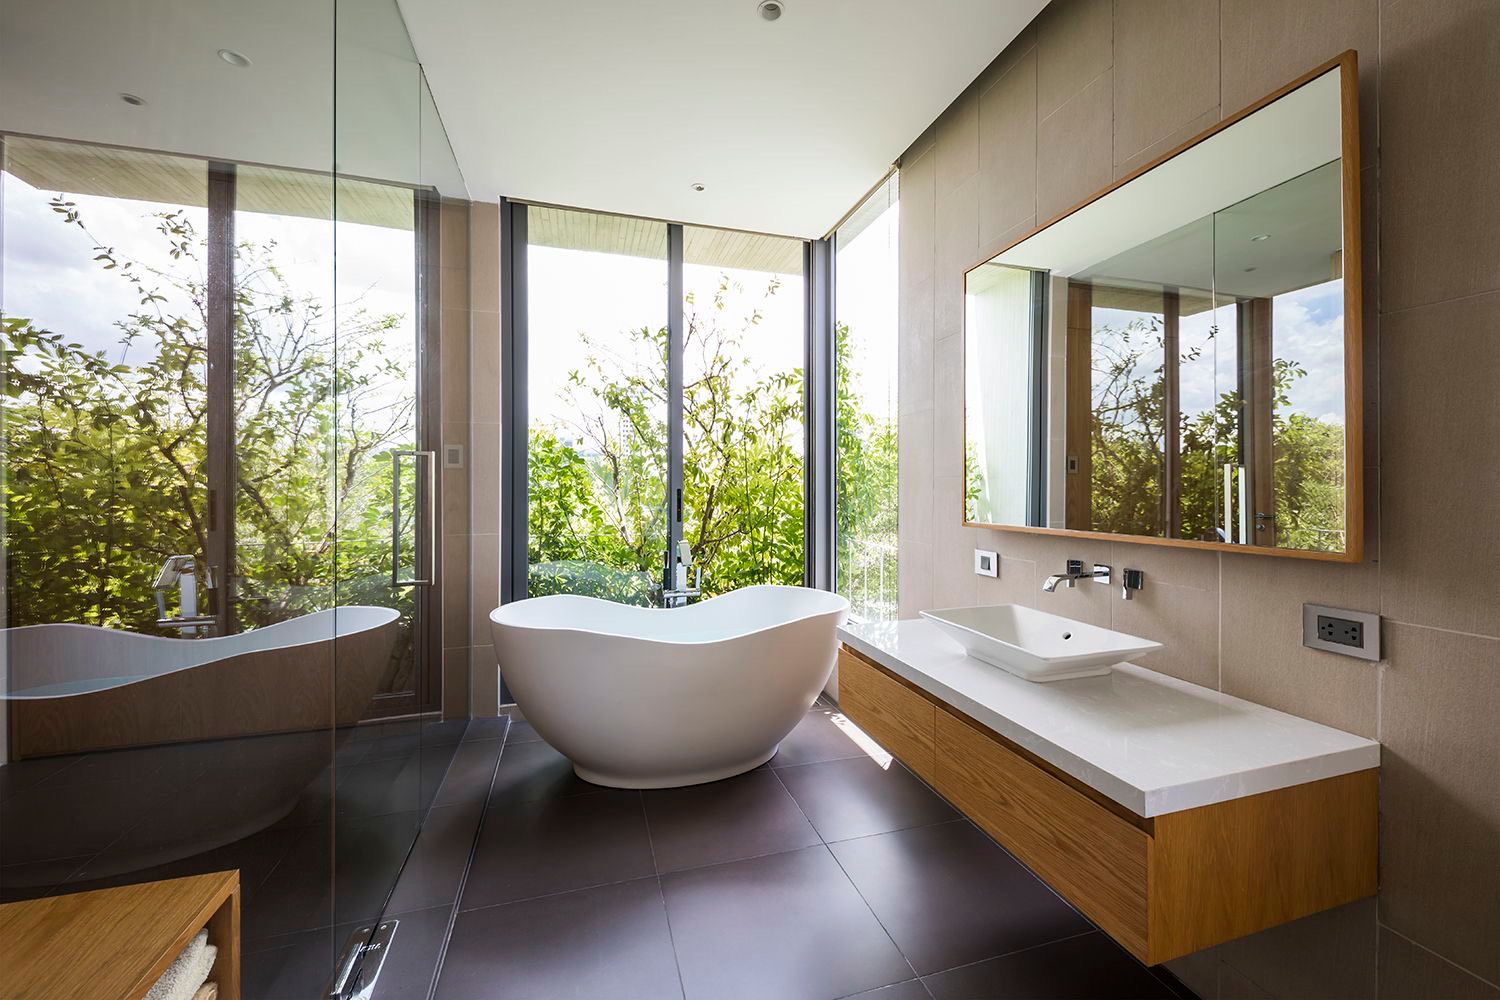 The bathroom's space and luxurious furnishings would match that of a high-end resort. Photo courtesy of